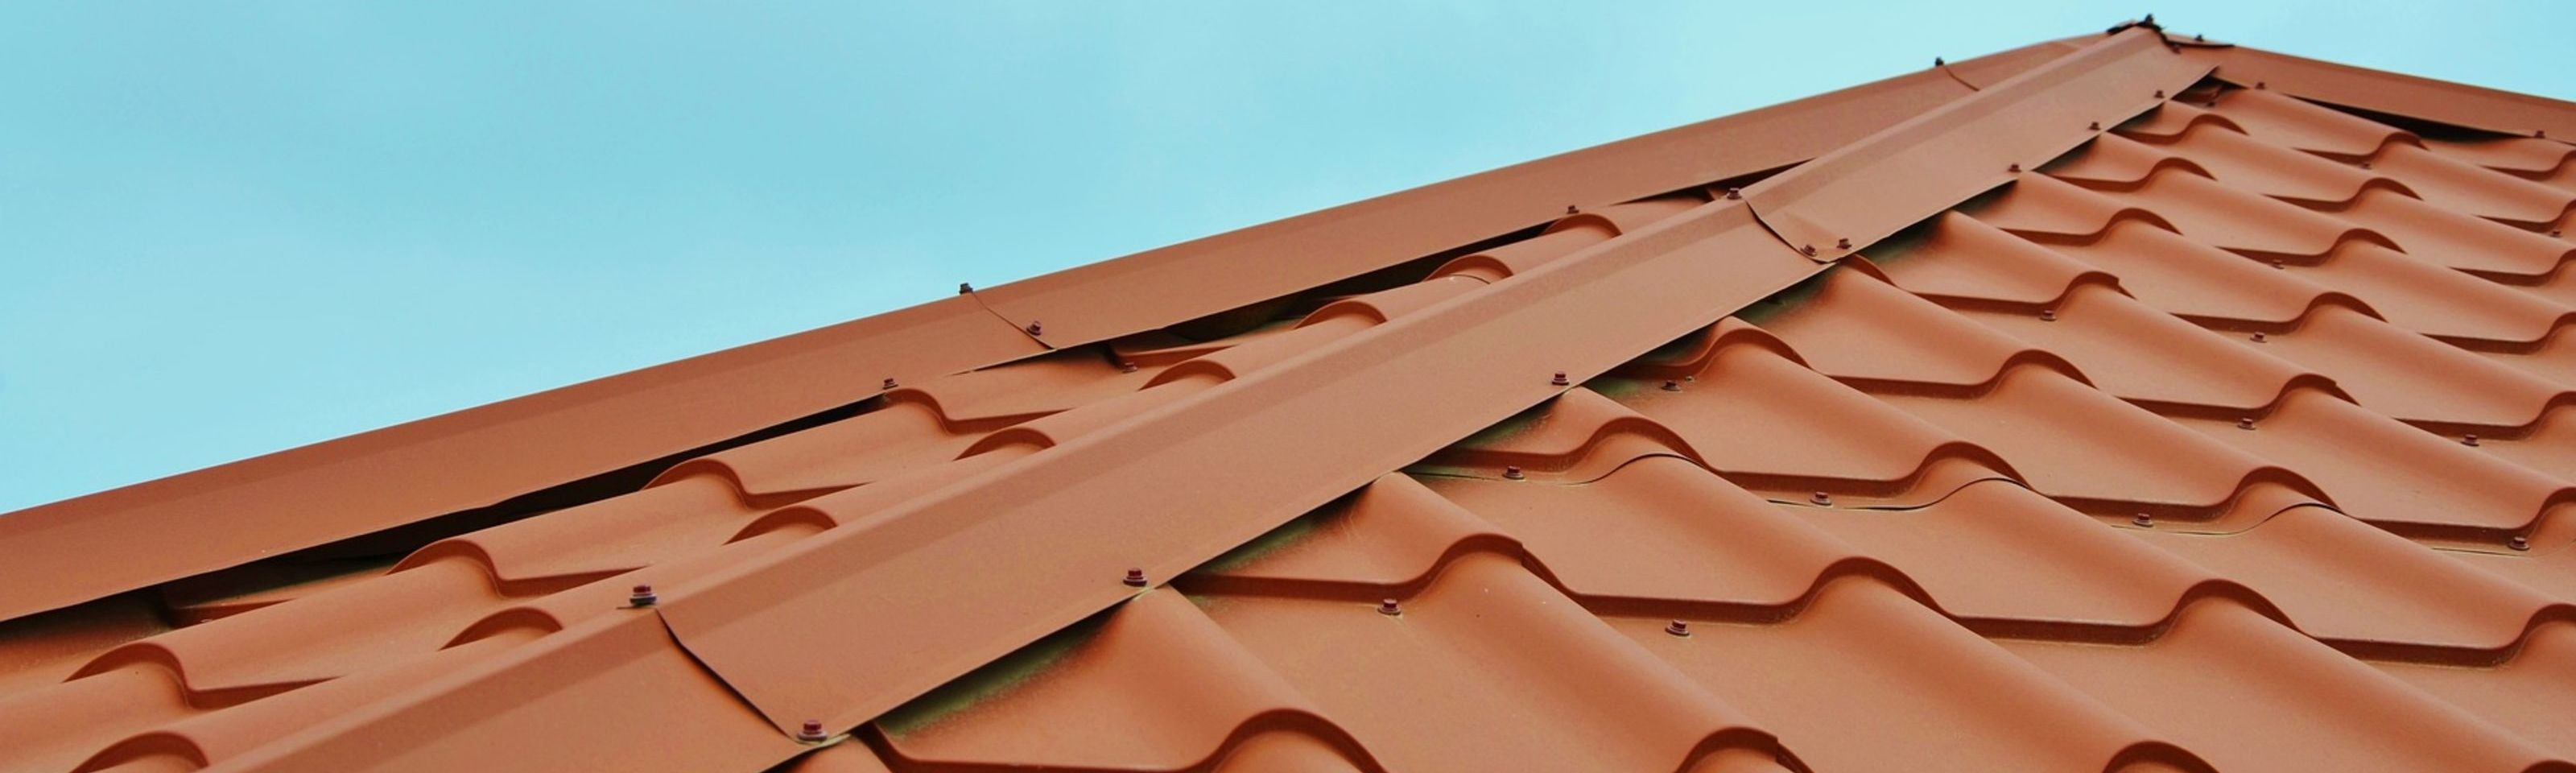 Installing Roof Tiles: A Step-by-Step Guide